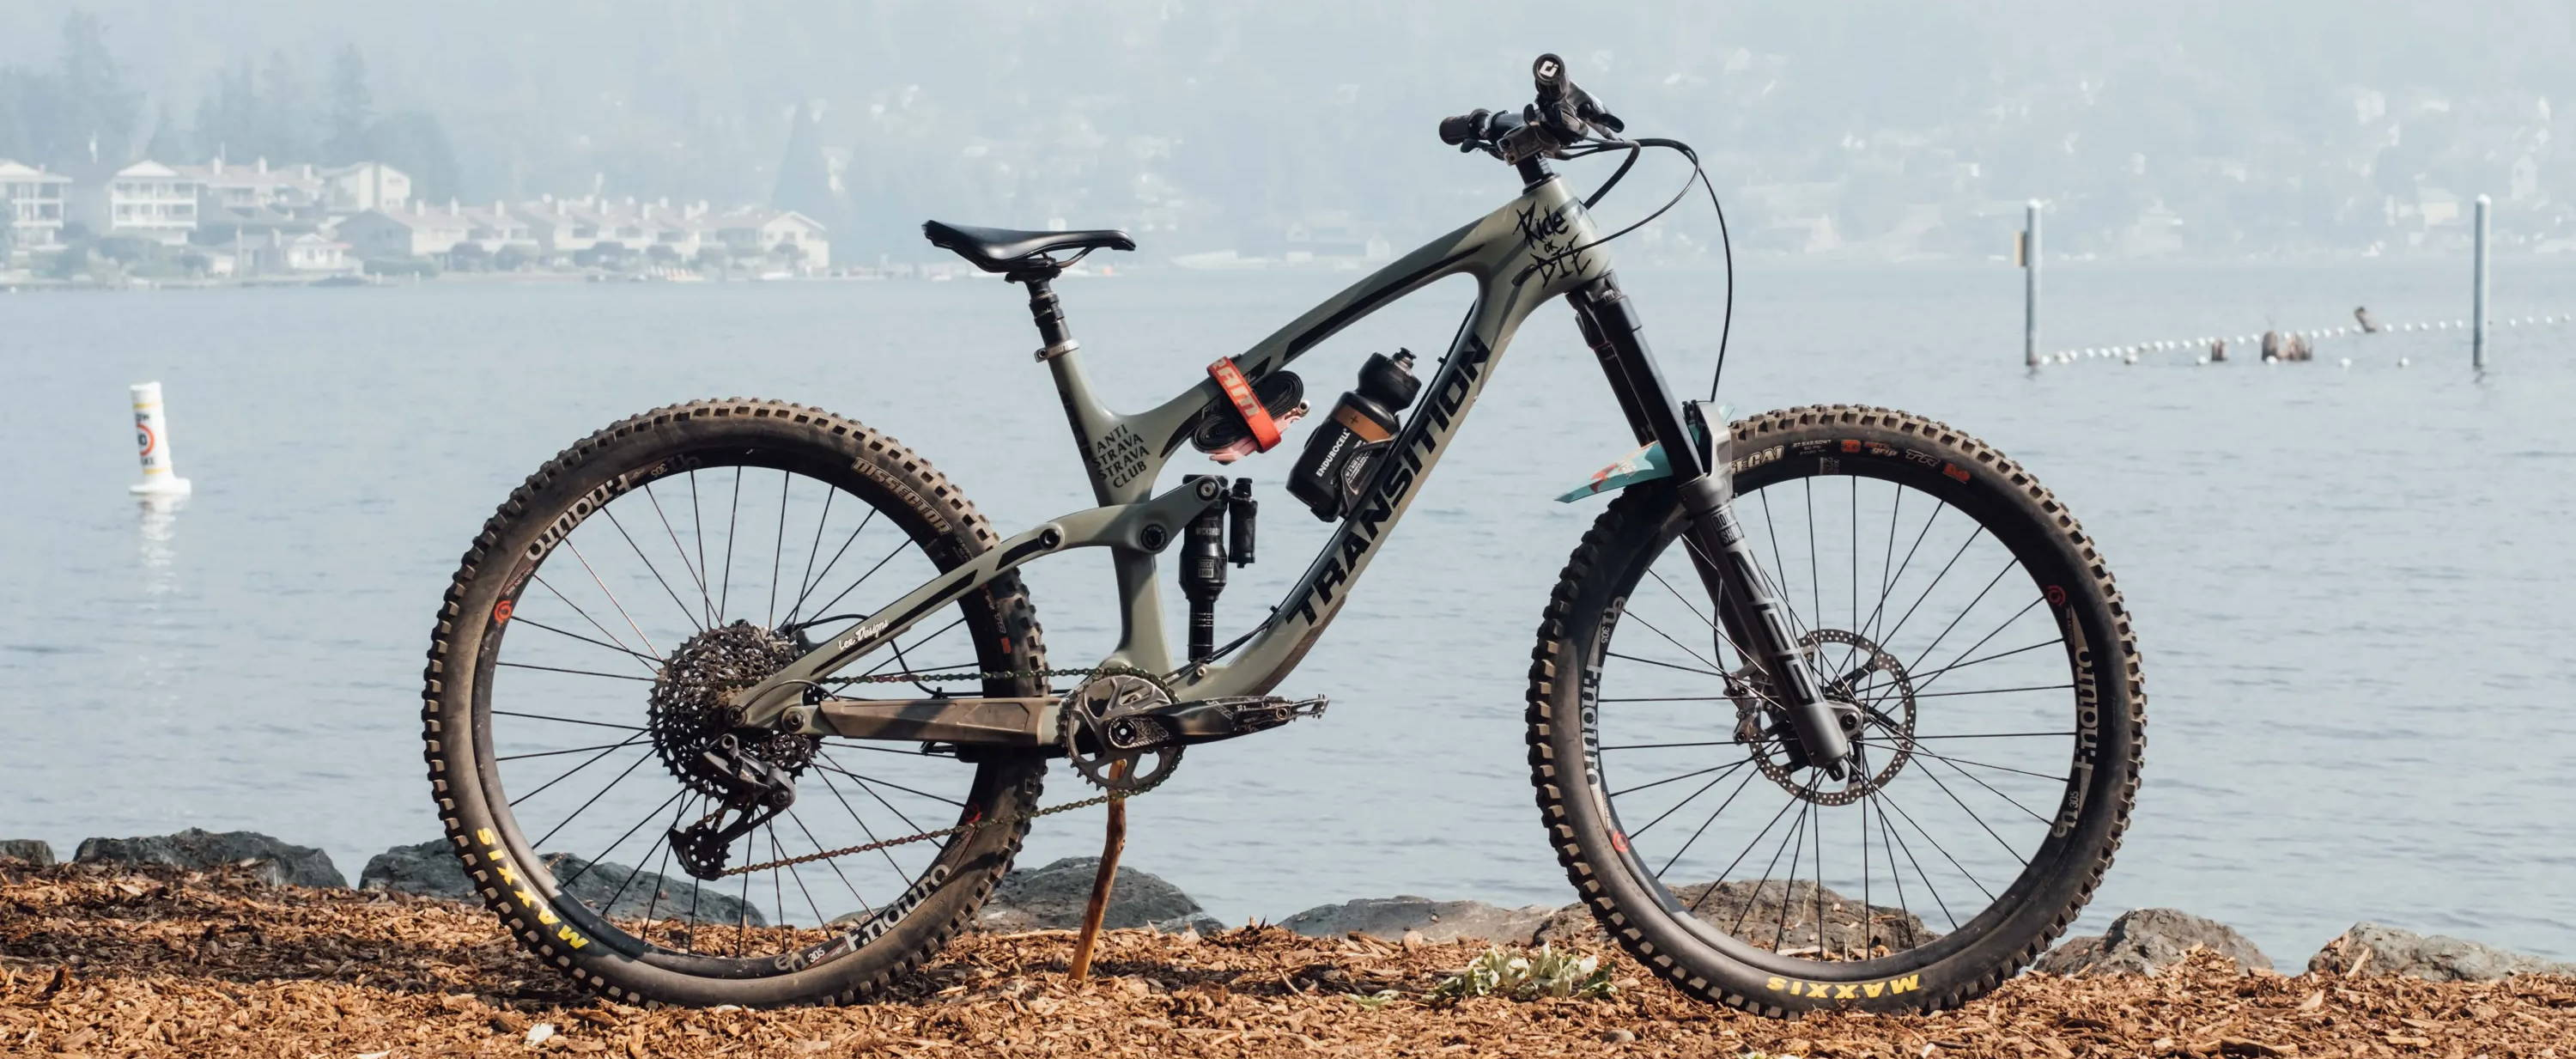 RockShox Super Deluxe Ultimate Review